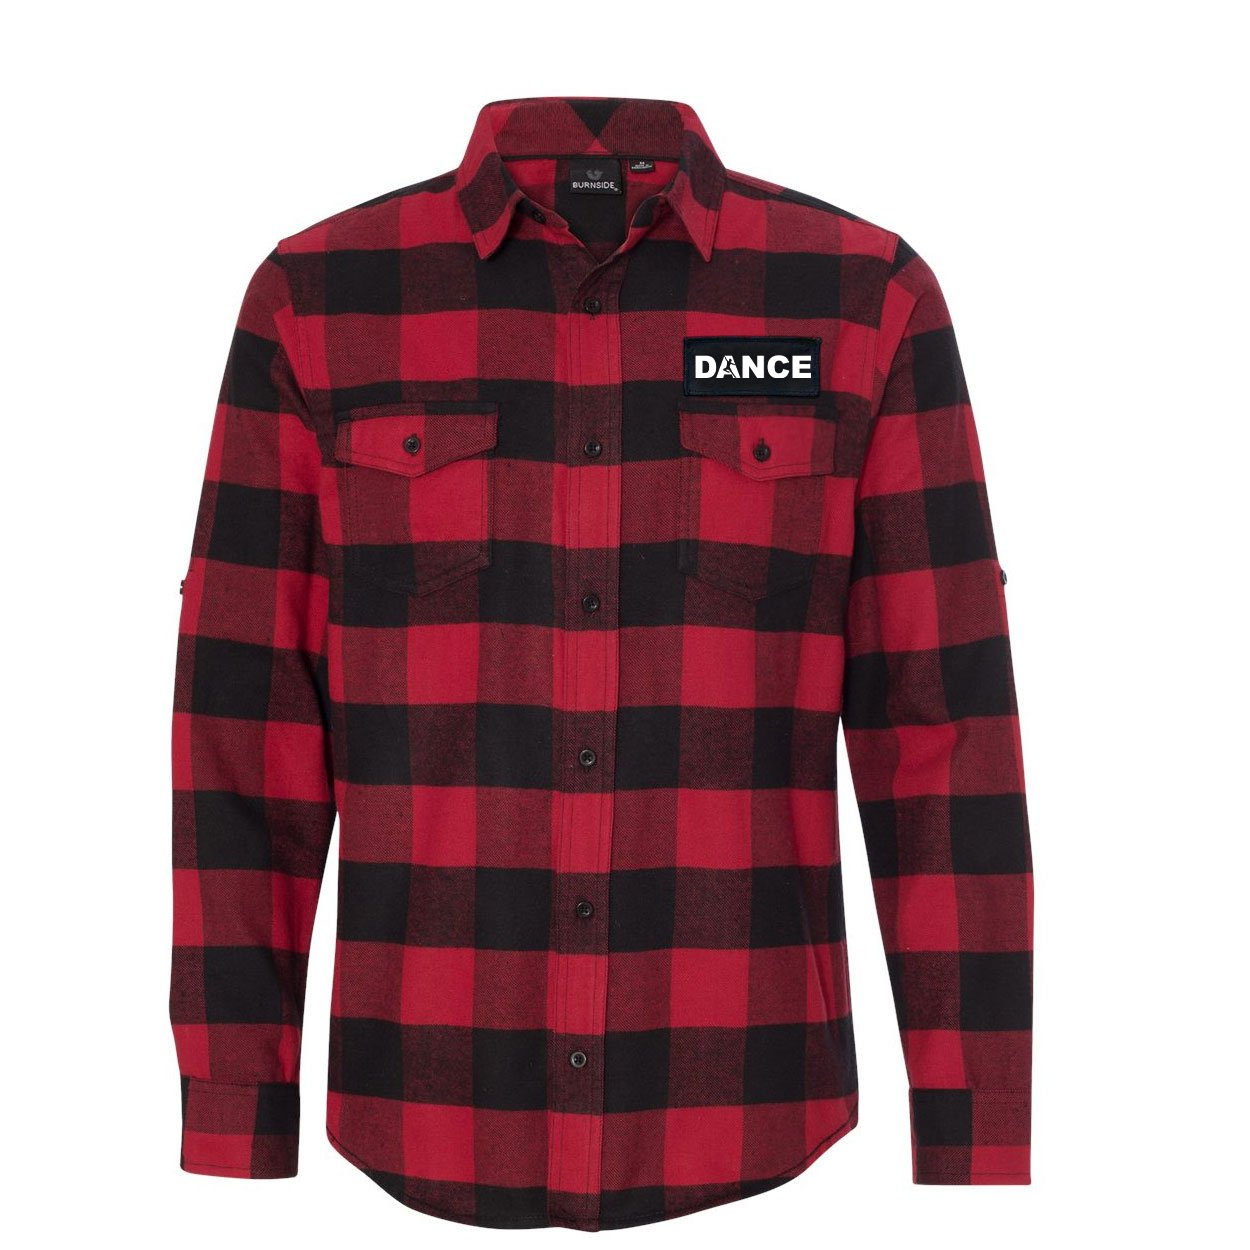 Dance Silhouette Logo Classic Unisex Long Sleeve Woven Patch Flannel Shirt Red/Black Buffalo (White Logo)